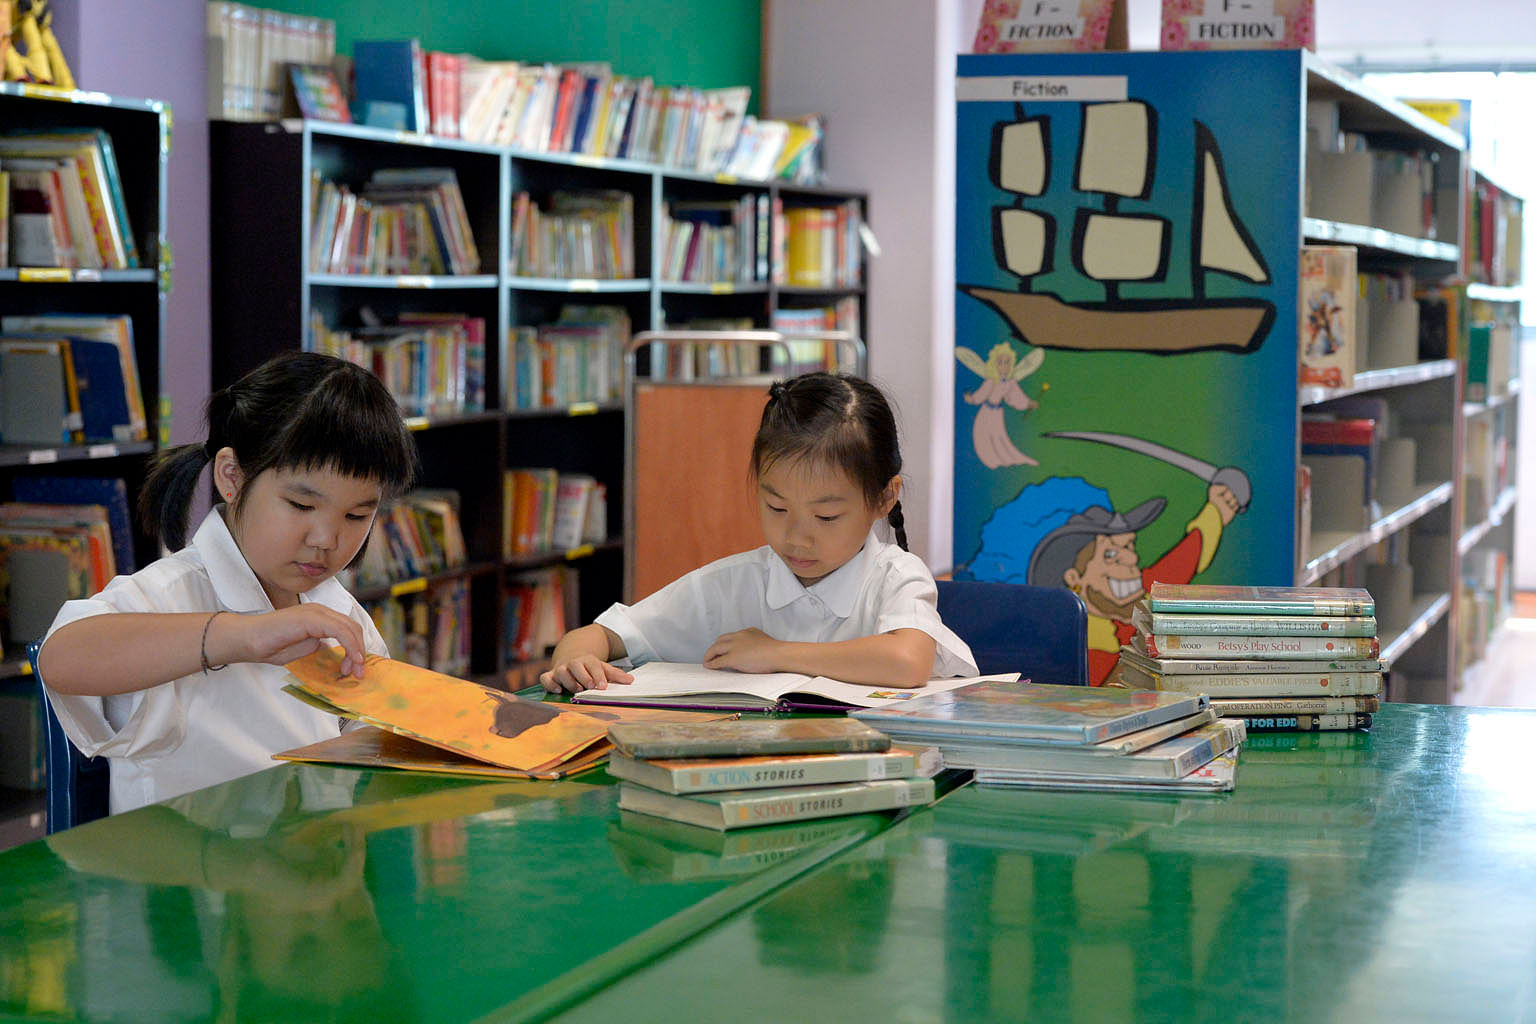 Why reading should be a compulsory subject in school